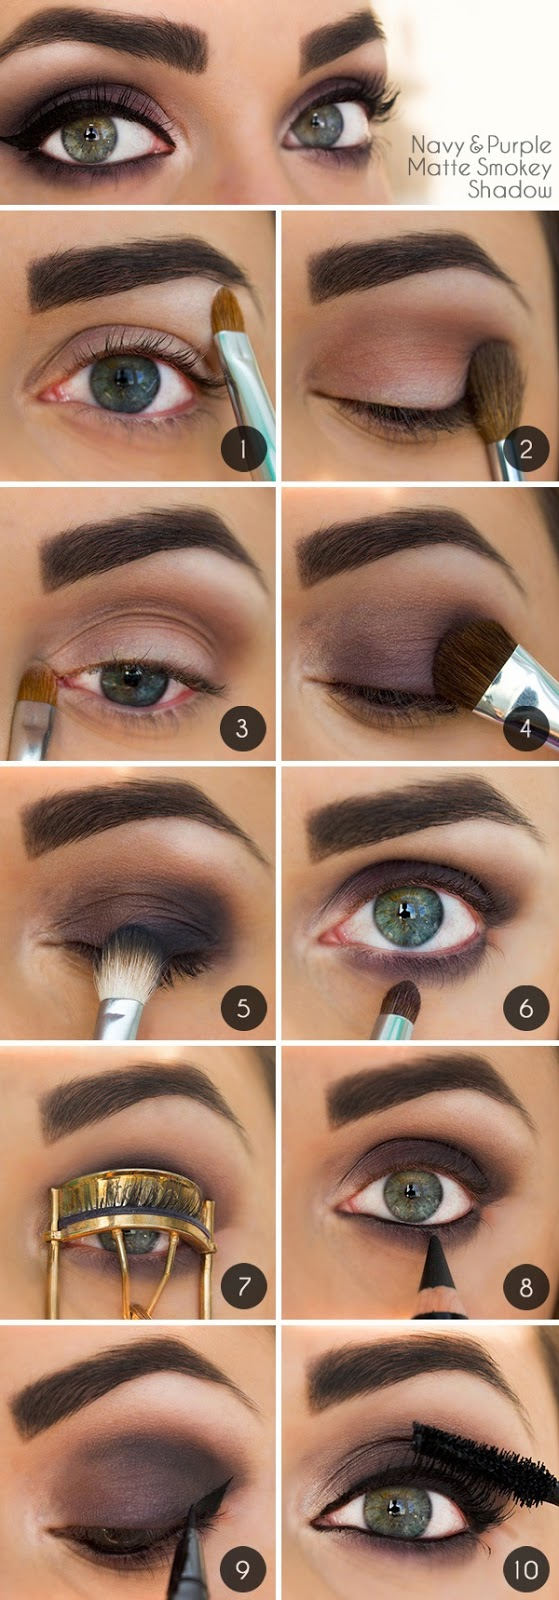 Eye Makeup Must-Try: Navy & Purple Smokey Eye